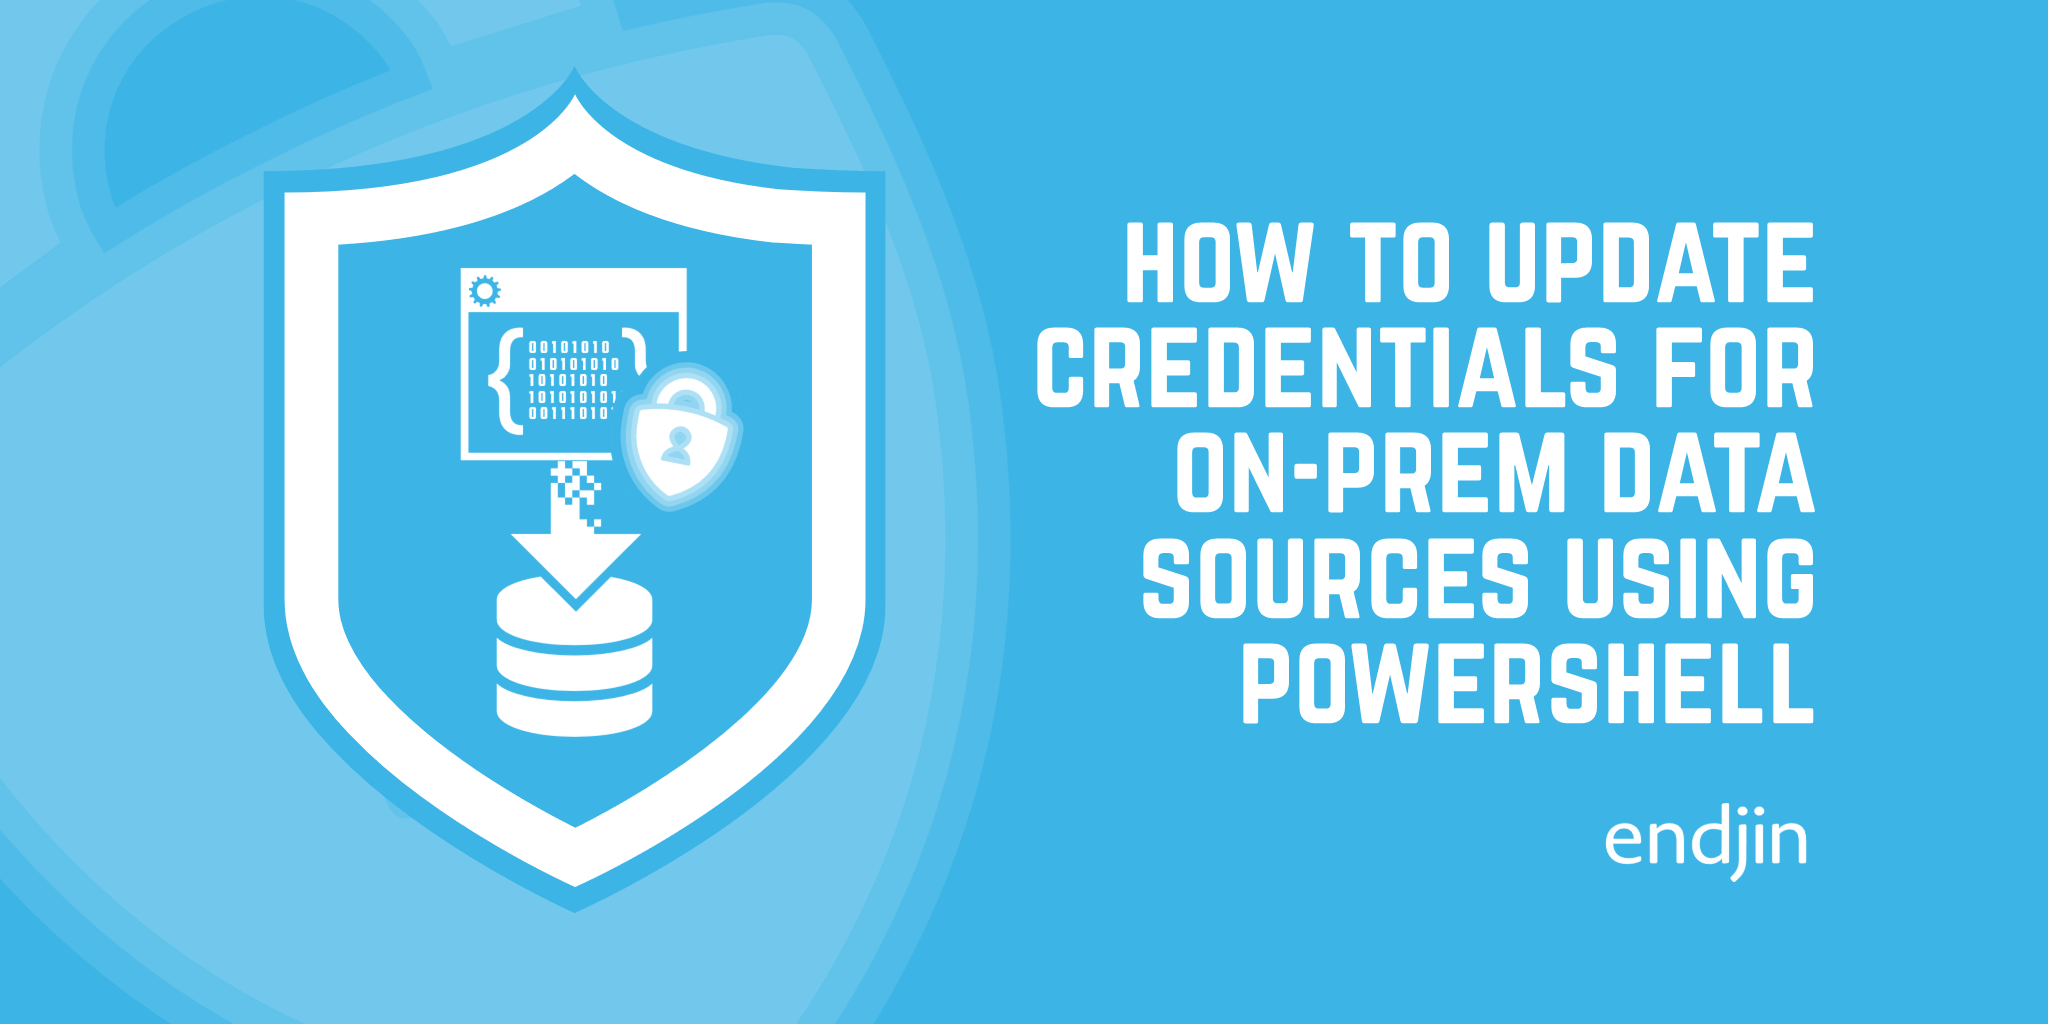 How to update credentials for an on-prem Power BI data source using PowerShell